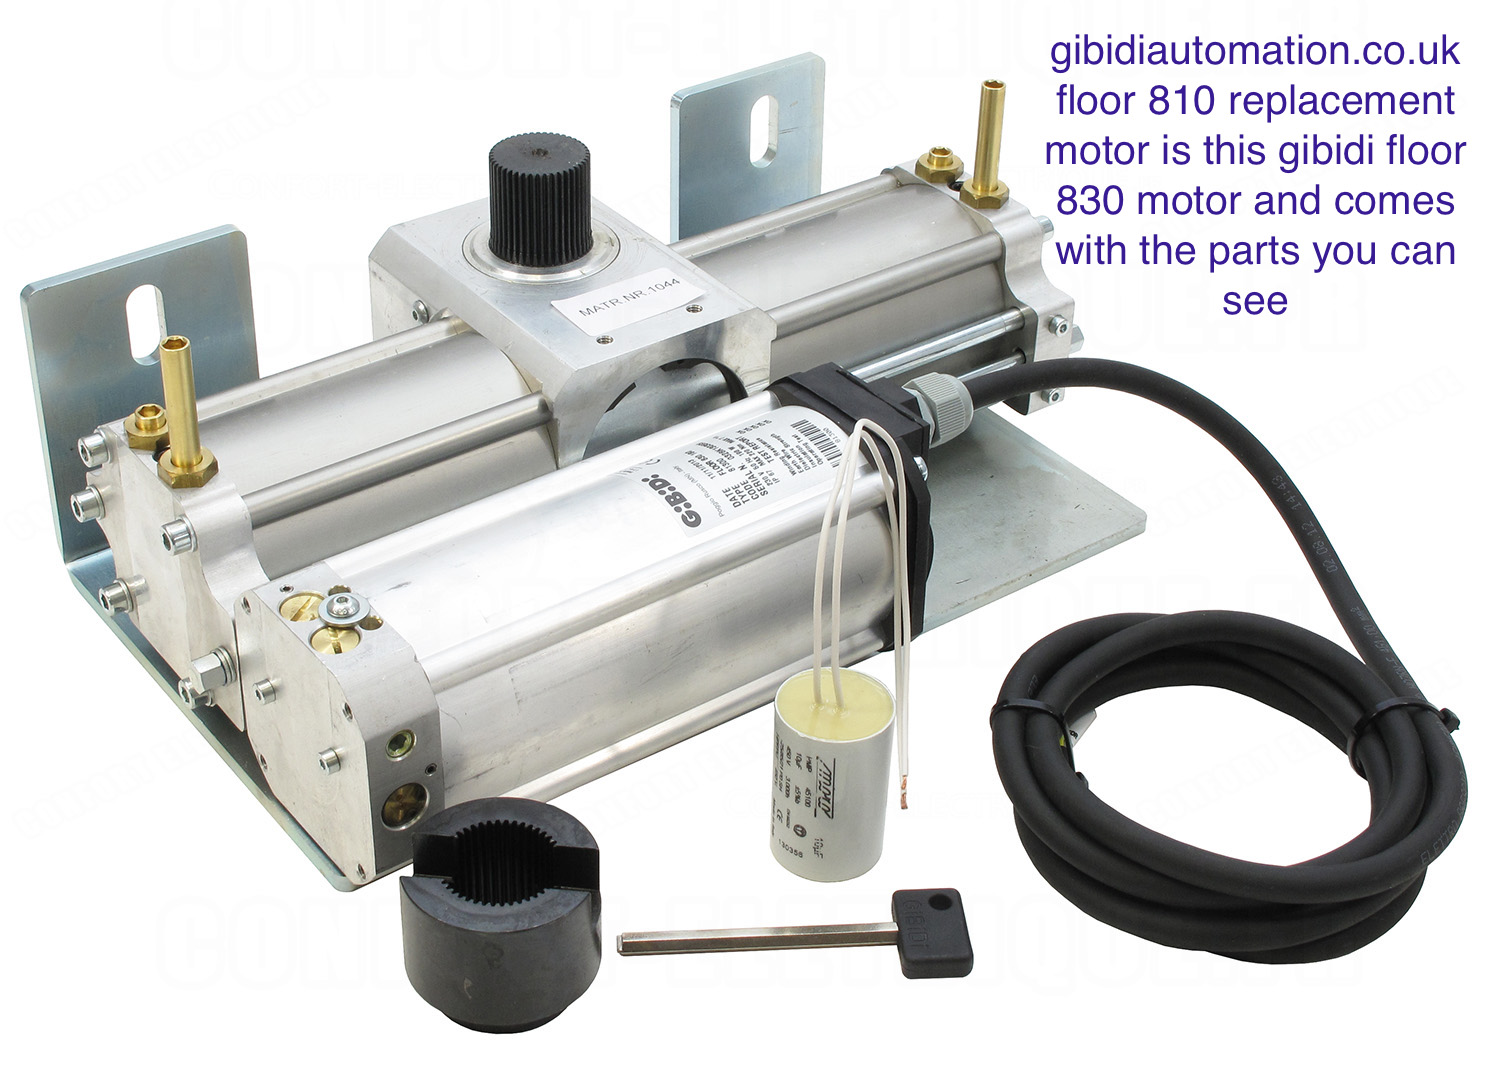 gibidi 830 motor REPLACES FLOOR 810 BAC MOTOR